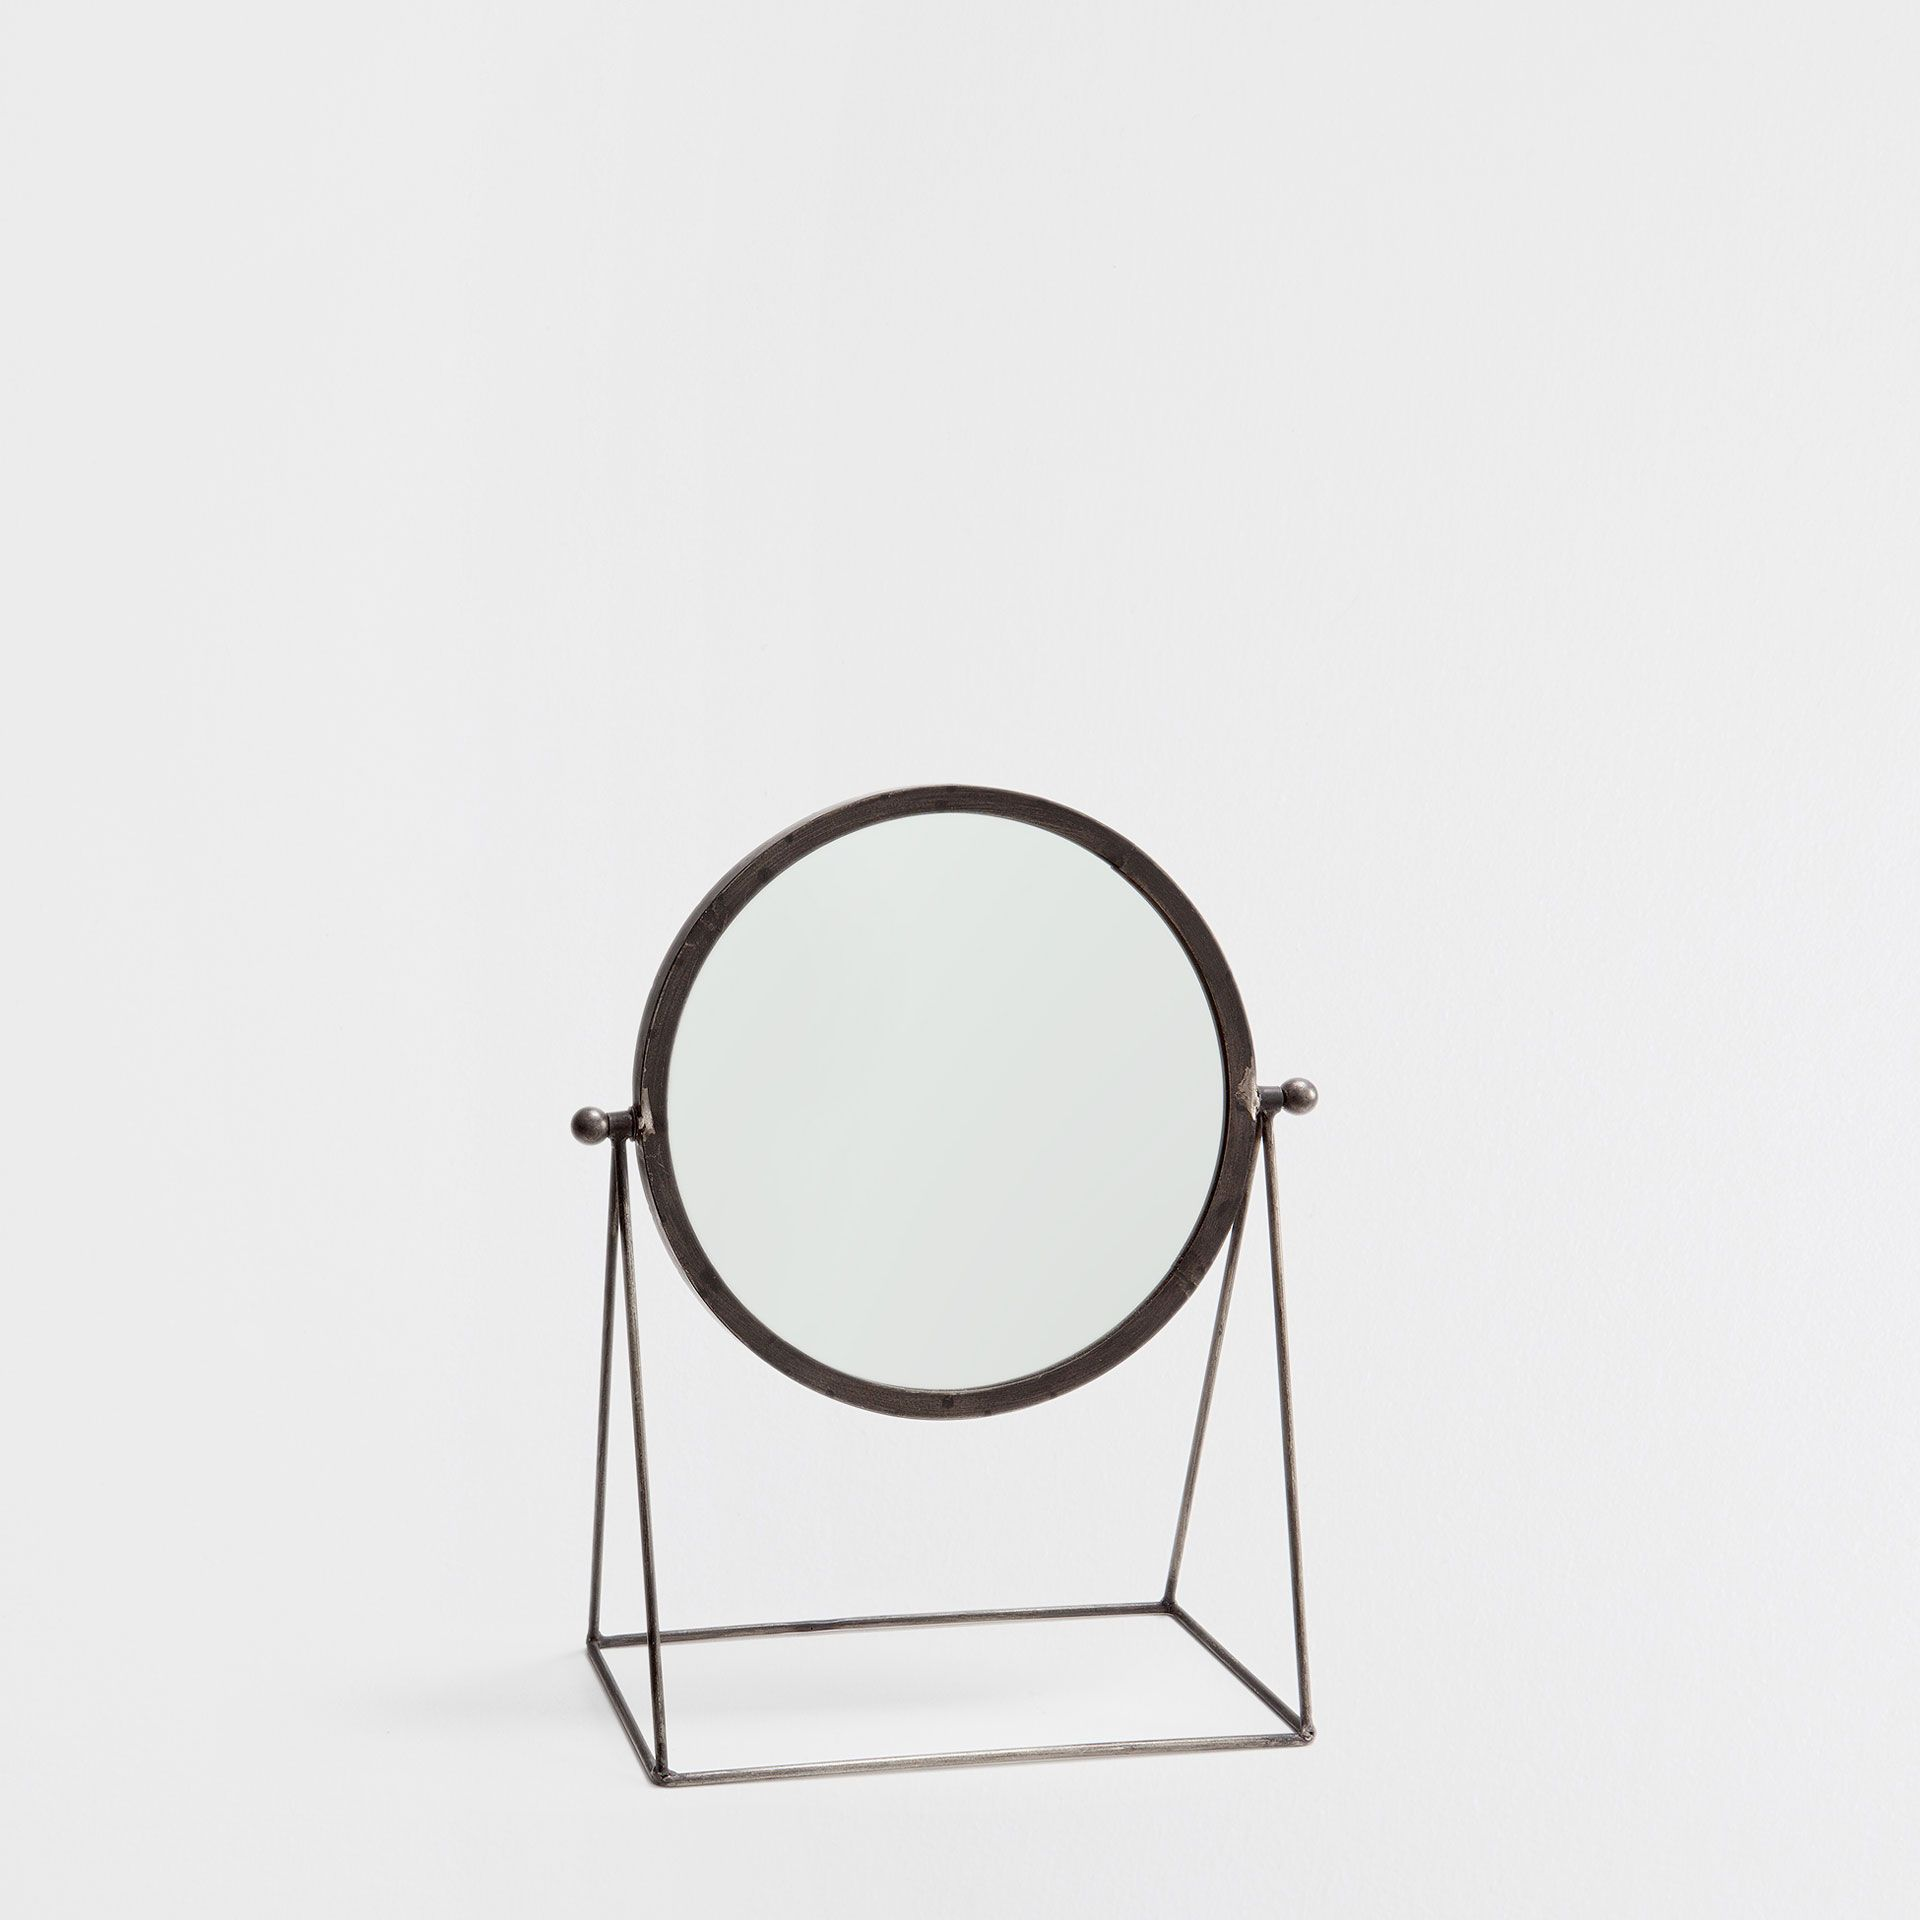 zara home, mirror decorations and zara on pinterest, Hause ideen